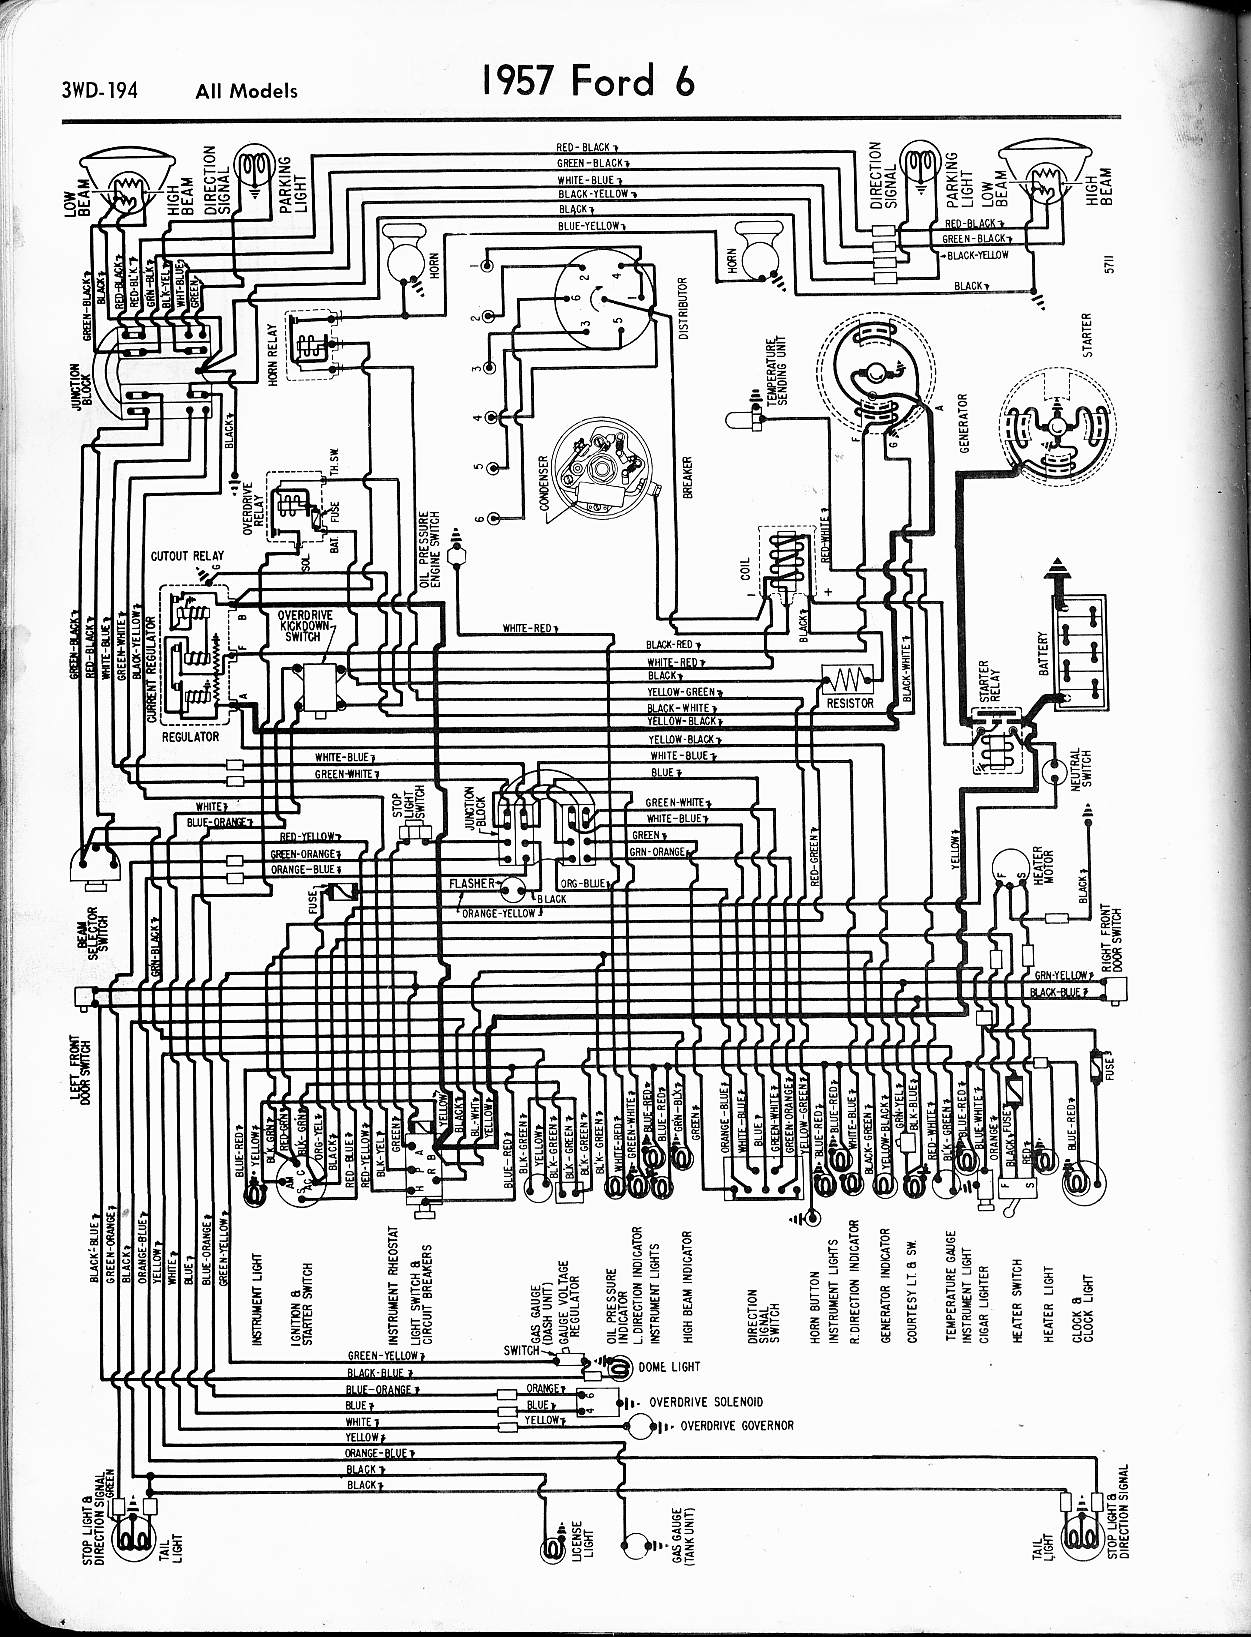 1957 ford pickup truck starter solenoid wiring wiring diagram rh  casamagdalena us 1951 Ford Dash Wiring Diagram 1951 Ford Wiring Diagram  Manual